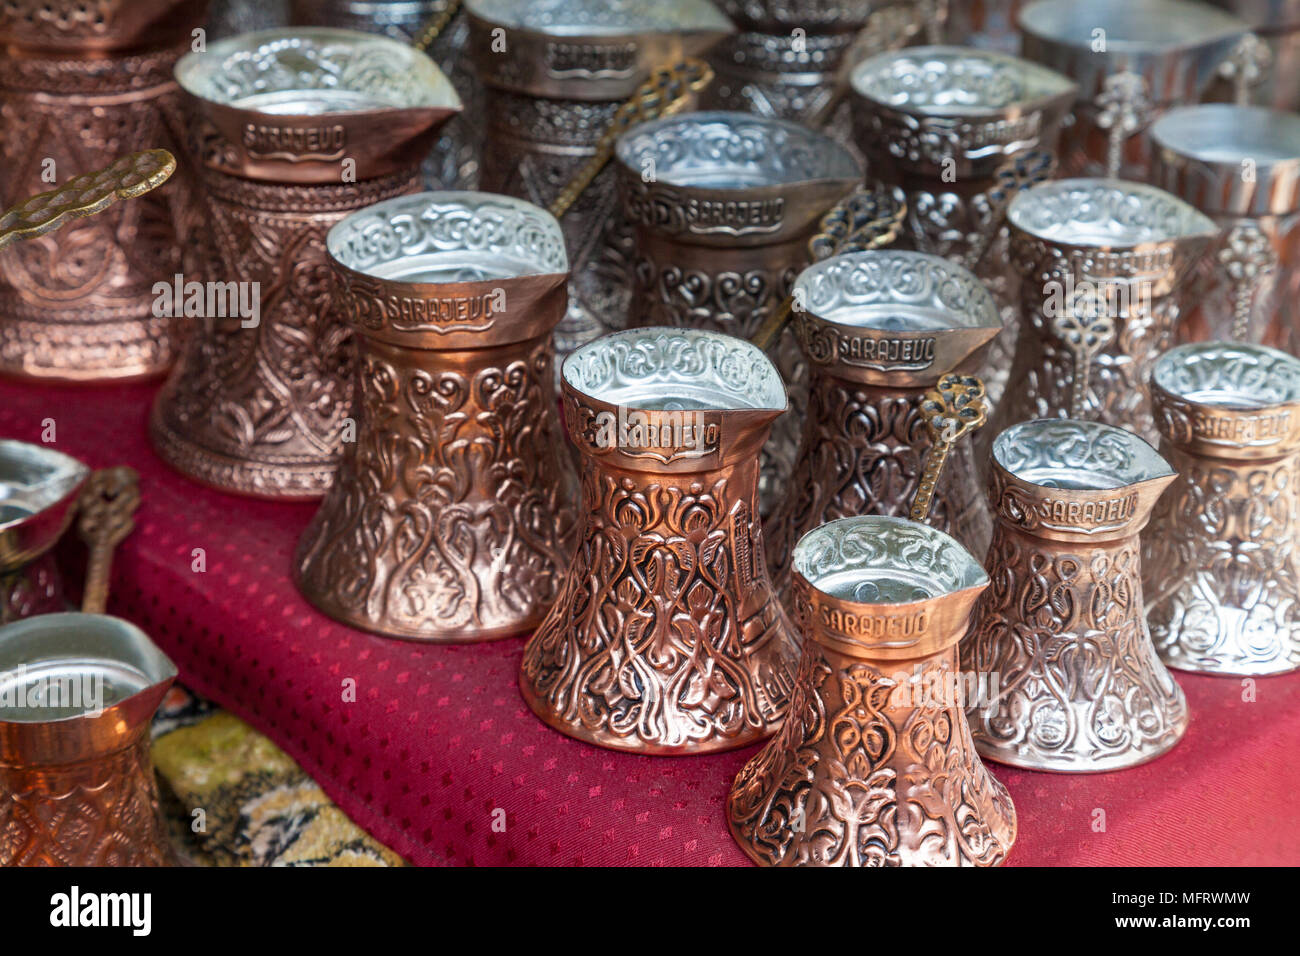 Close up of copper coffee pots in Sarajevo, Bosnia and Herzegovina - Stock Image